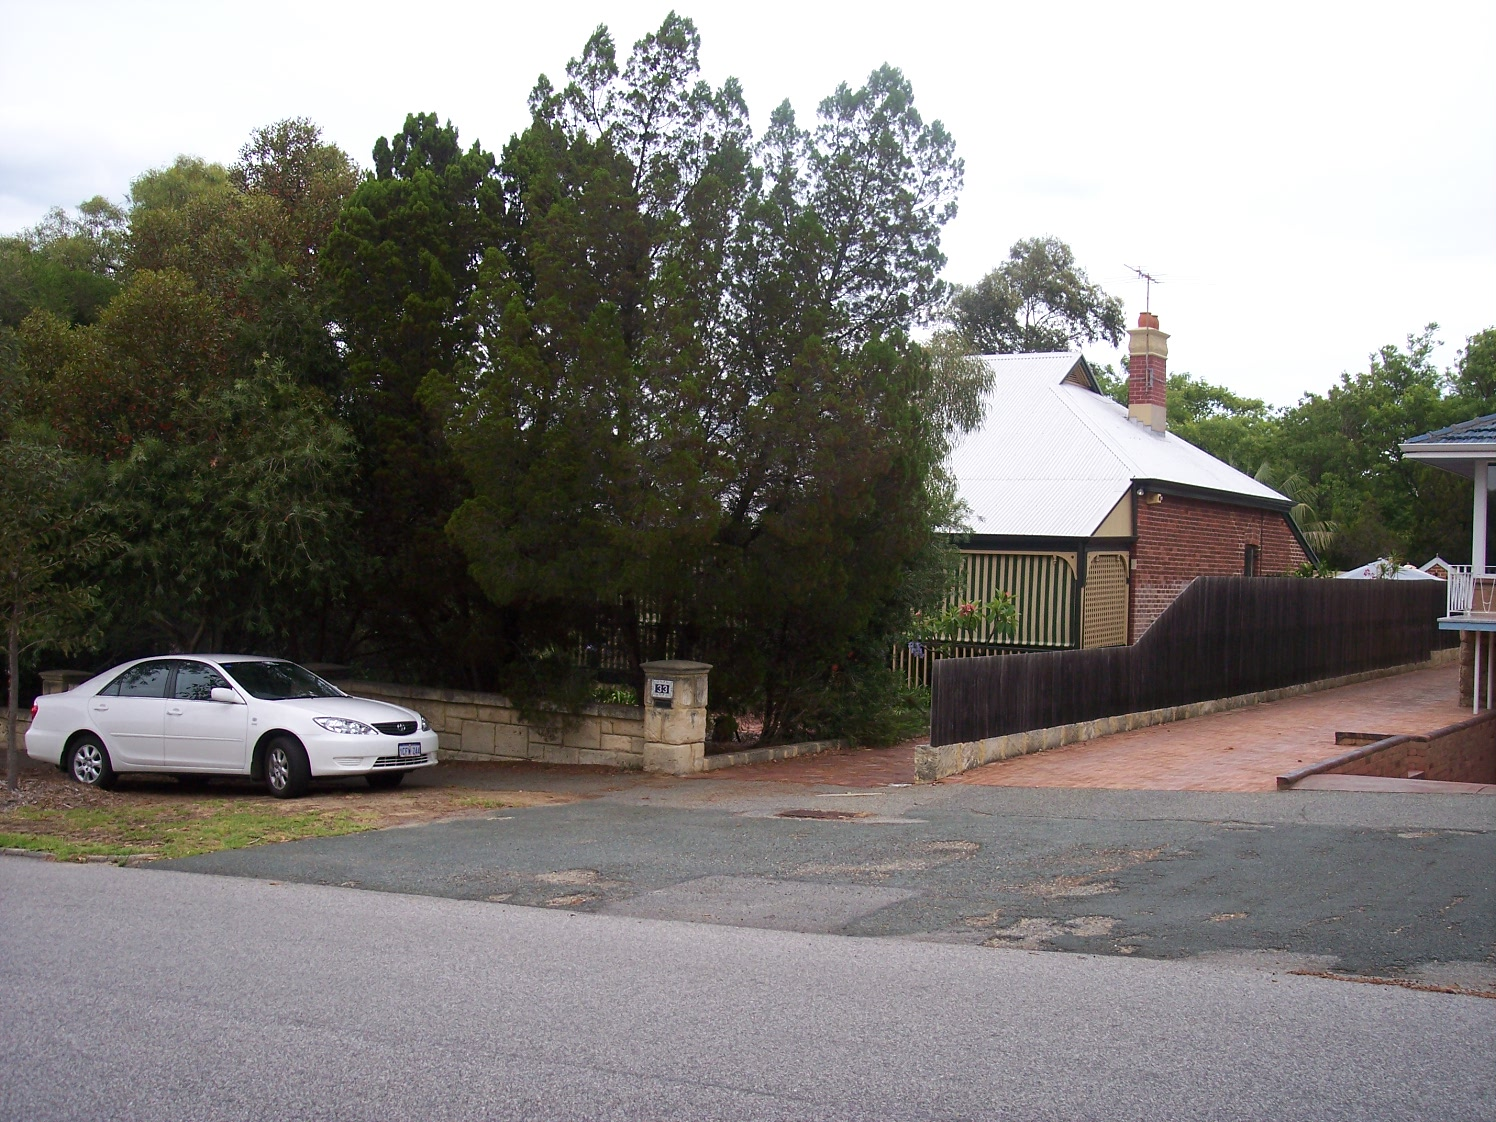 4-1-07 View WSW 33 Fortescue Street.jpg